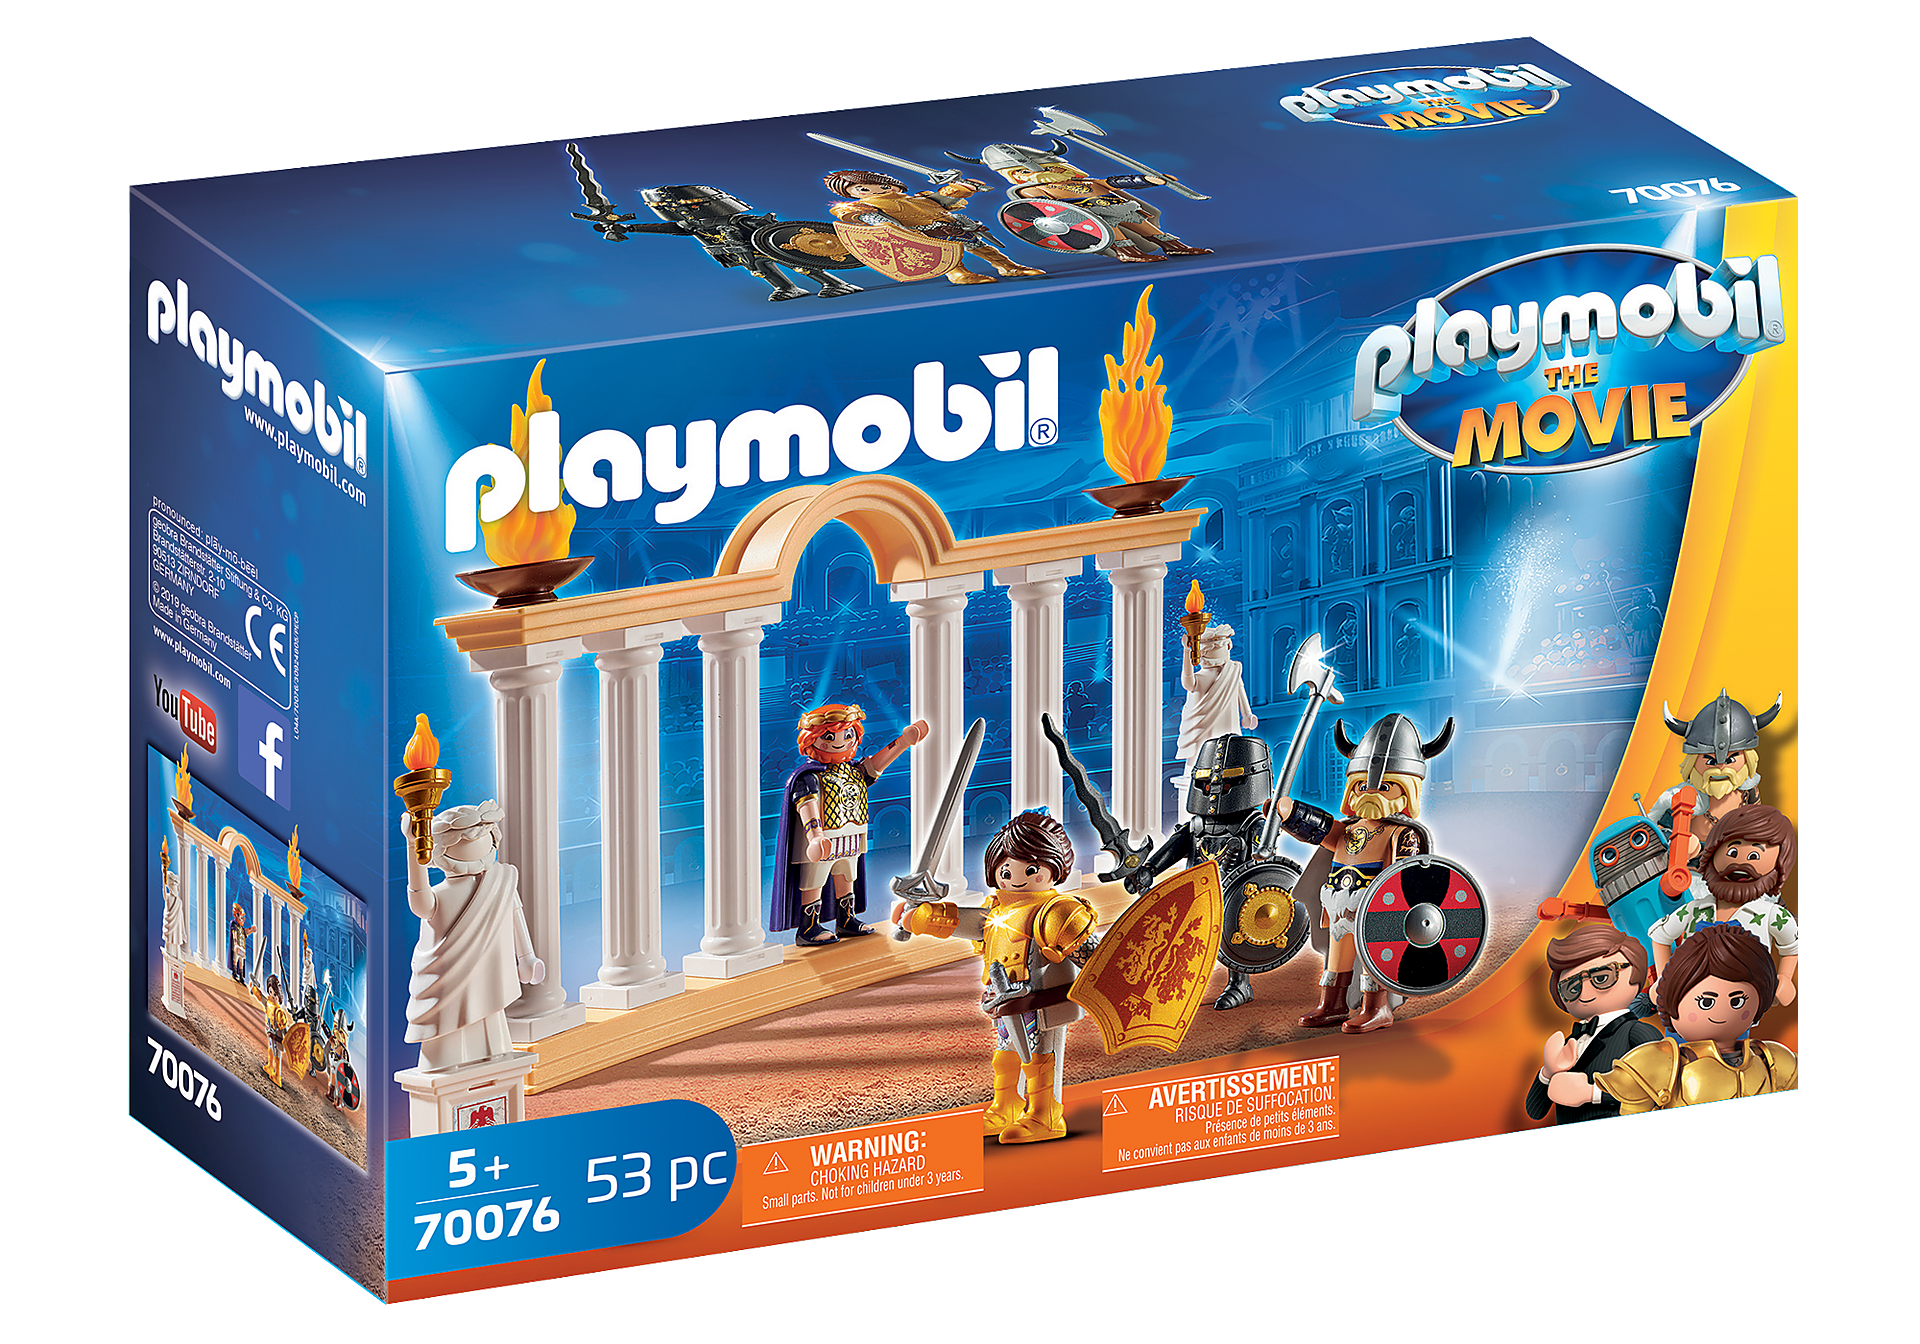 http://media.playmobil.com/i/playmobil/70076_product_box_front/PLAYMOBIL:THE MOVIE Emperor Maximus in the Colosseum